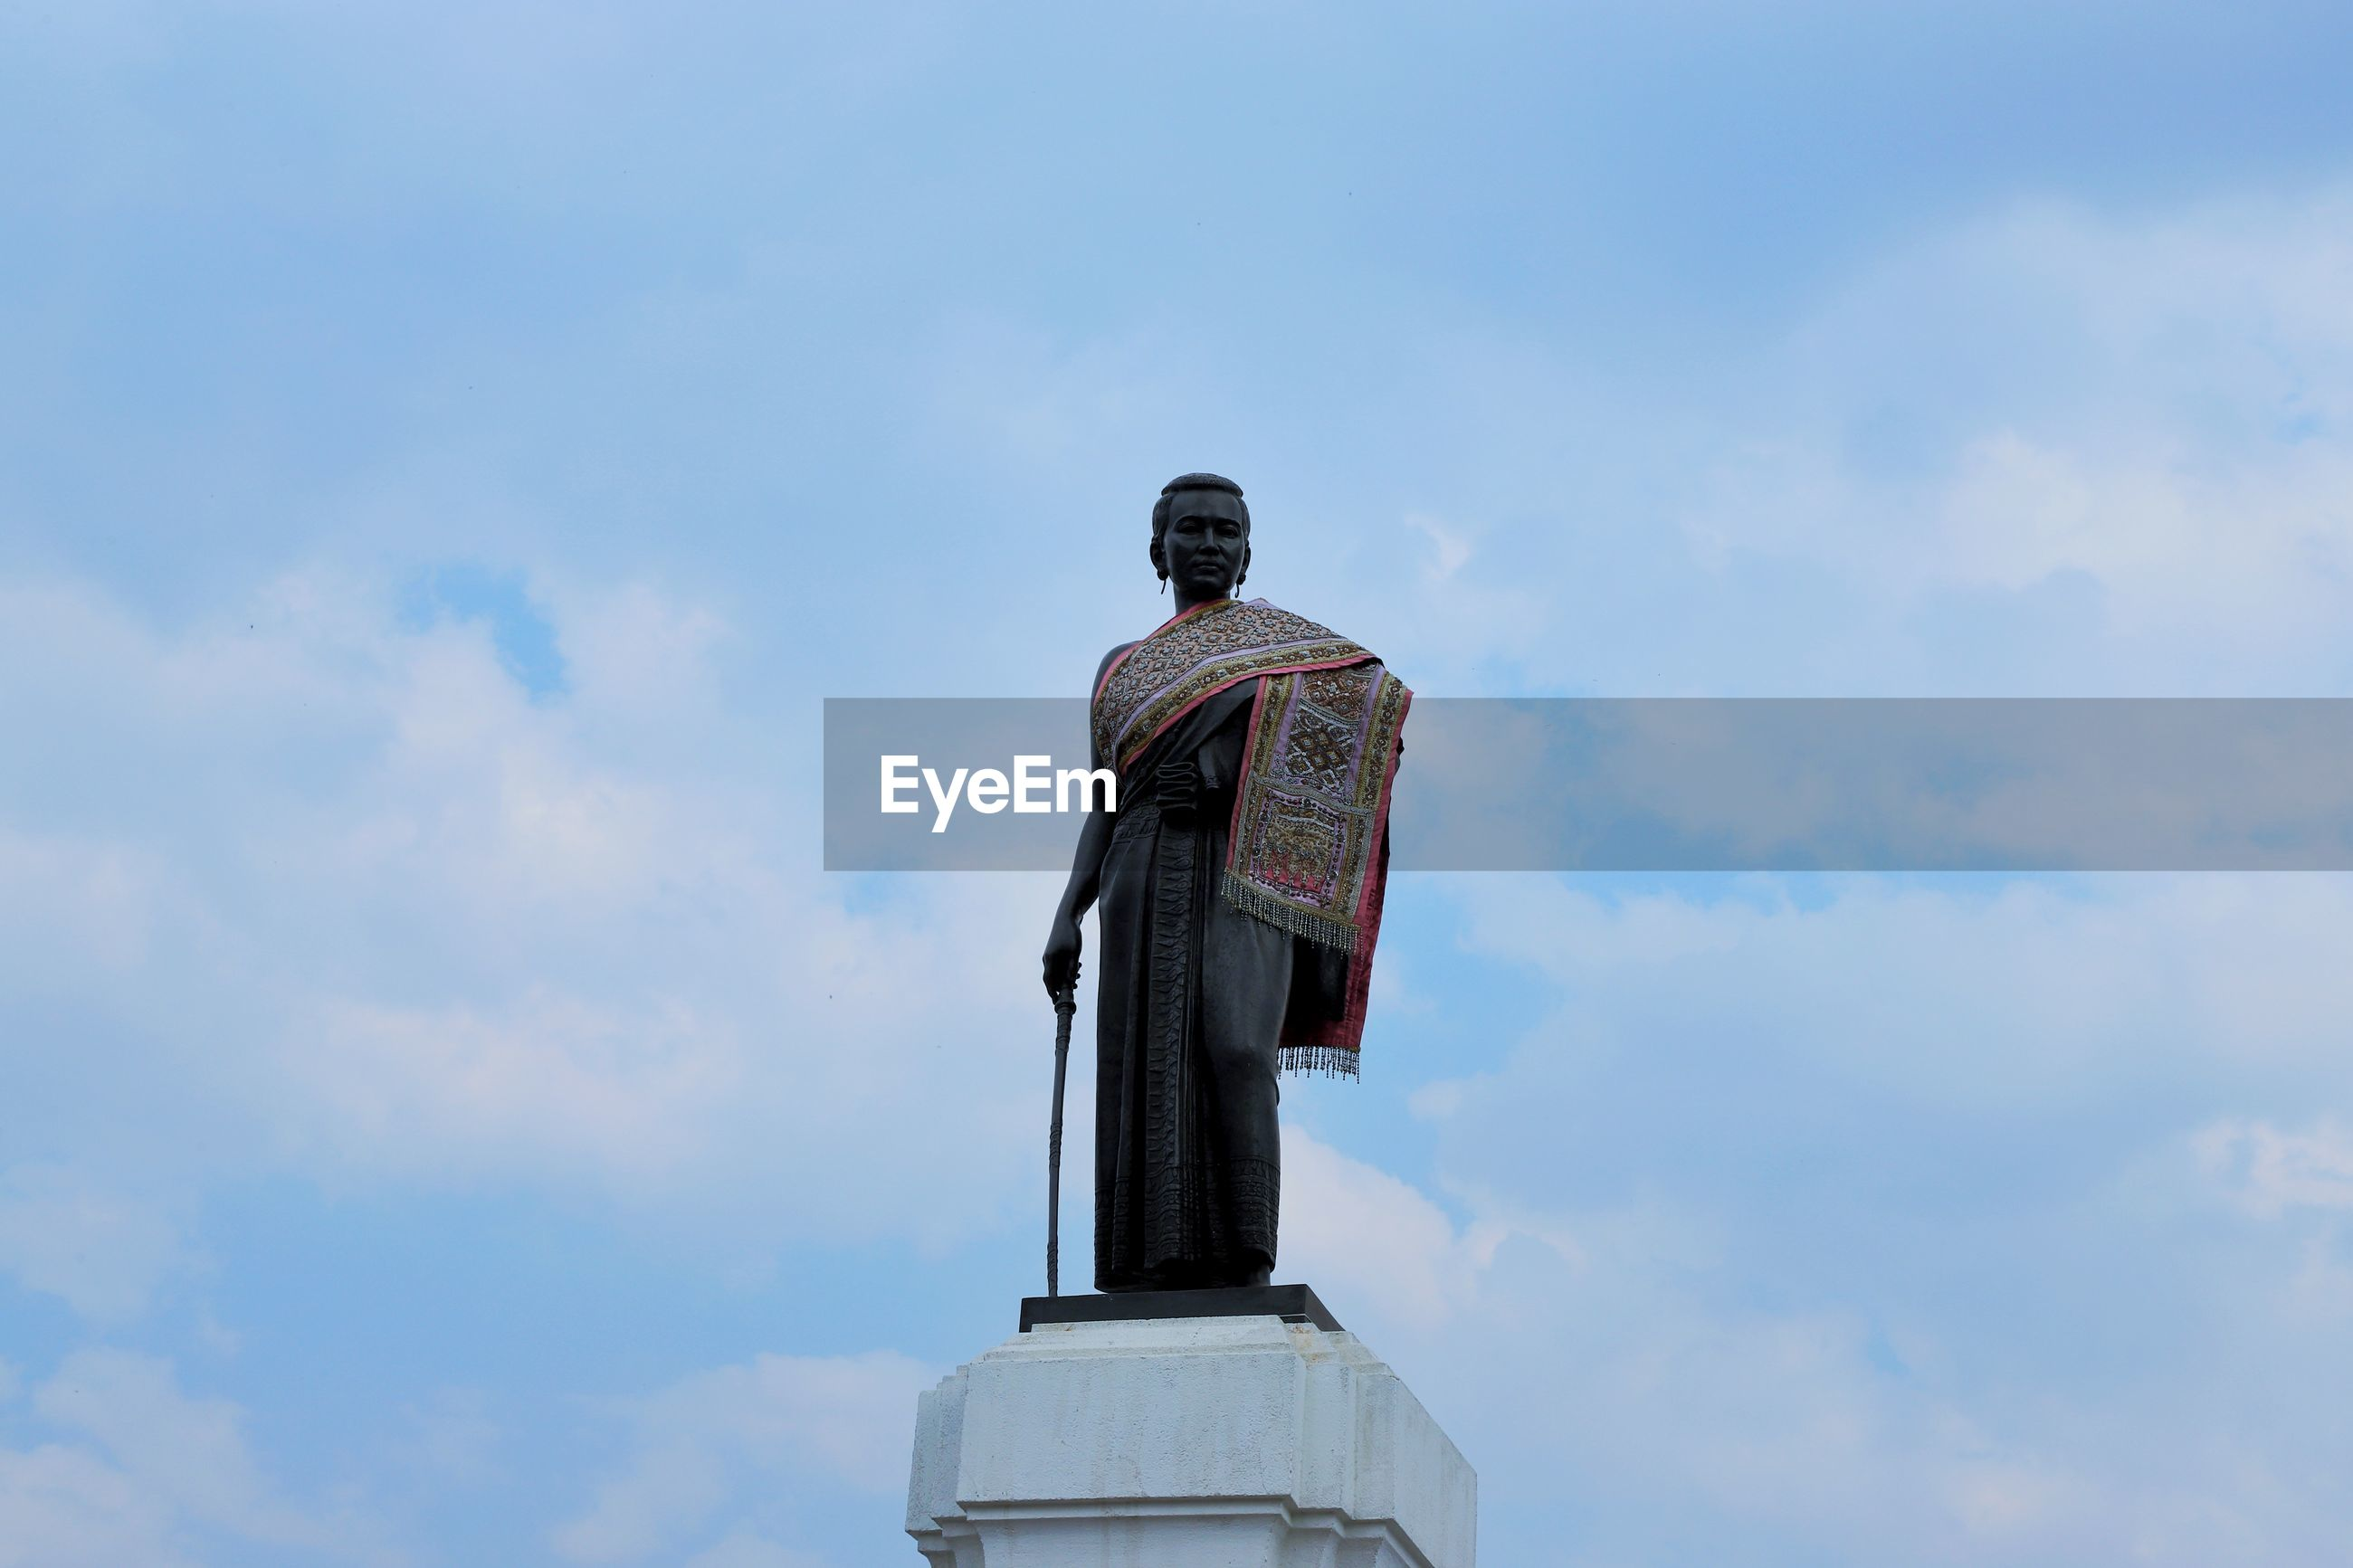 Thao suranaree monument heroines of korat the center of the minds of nakhon ratchasima residents